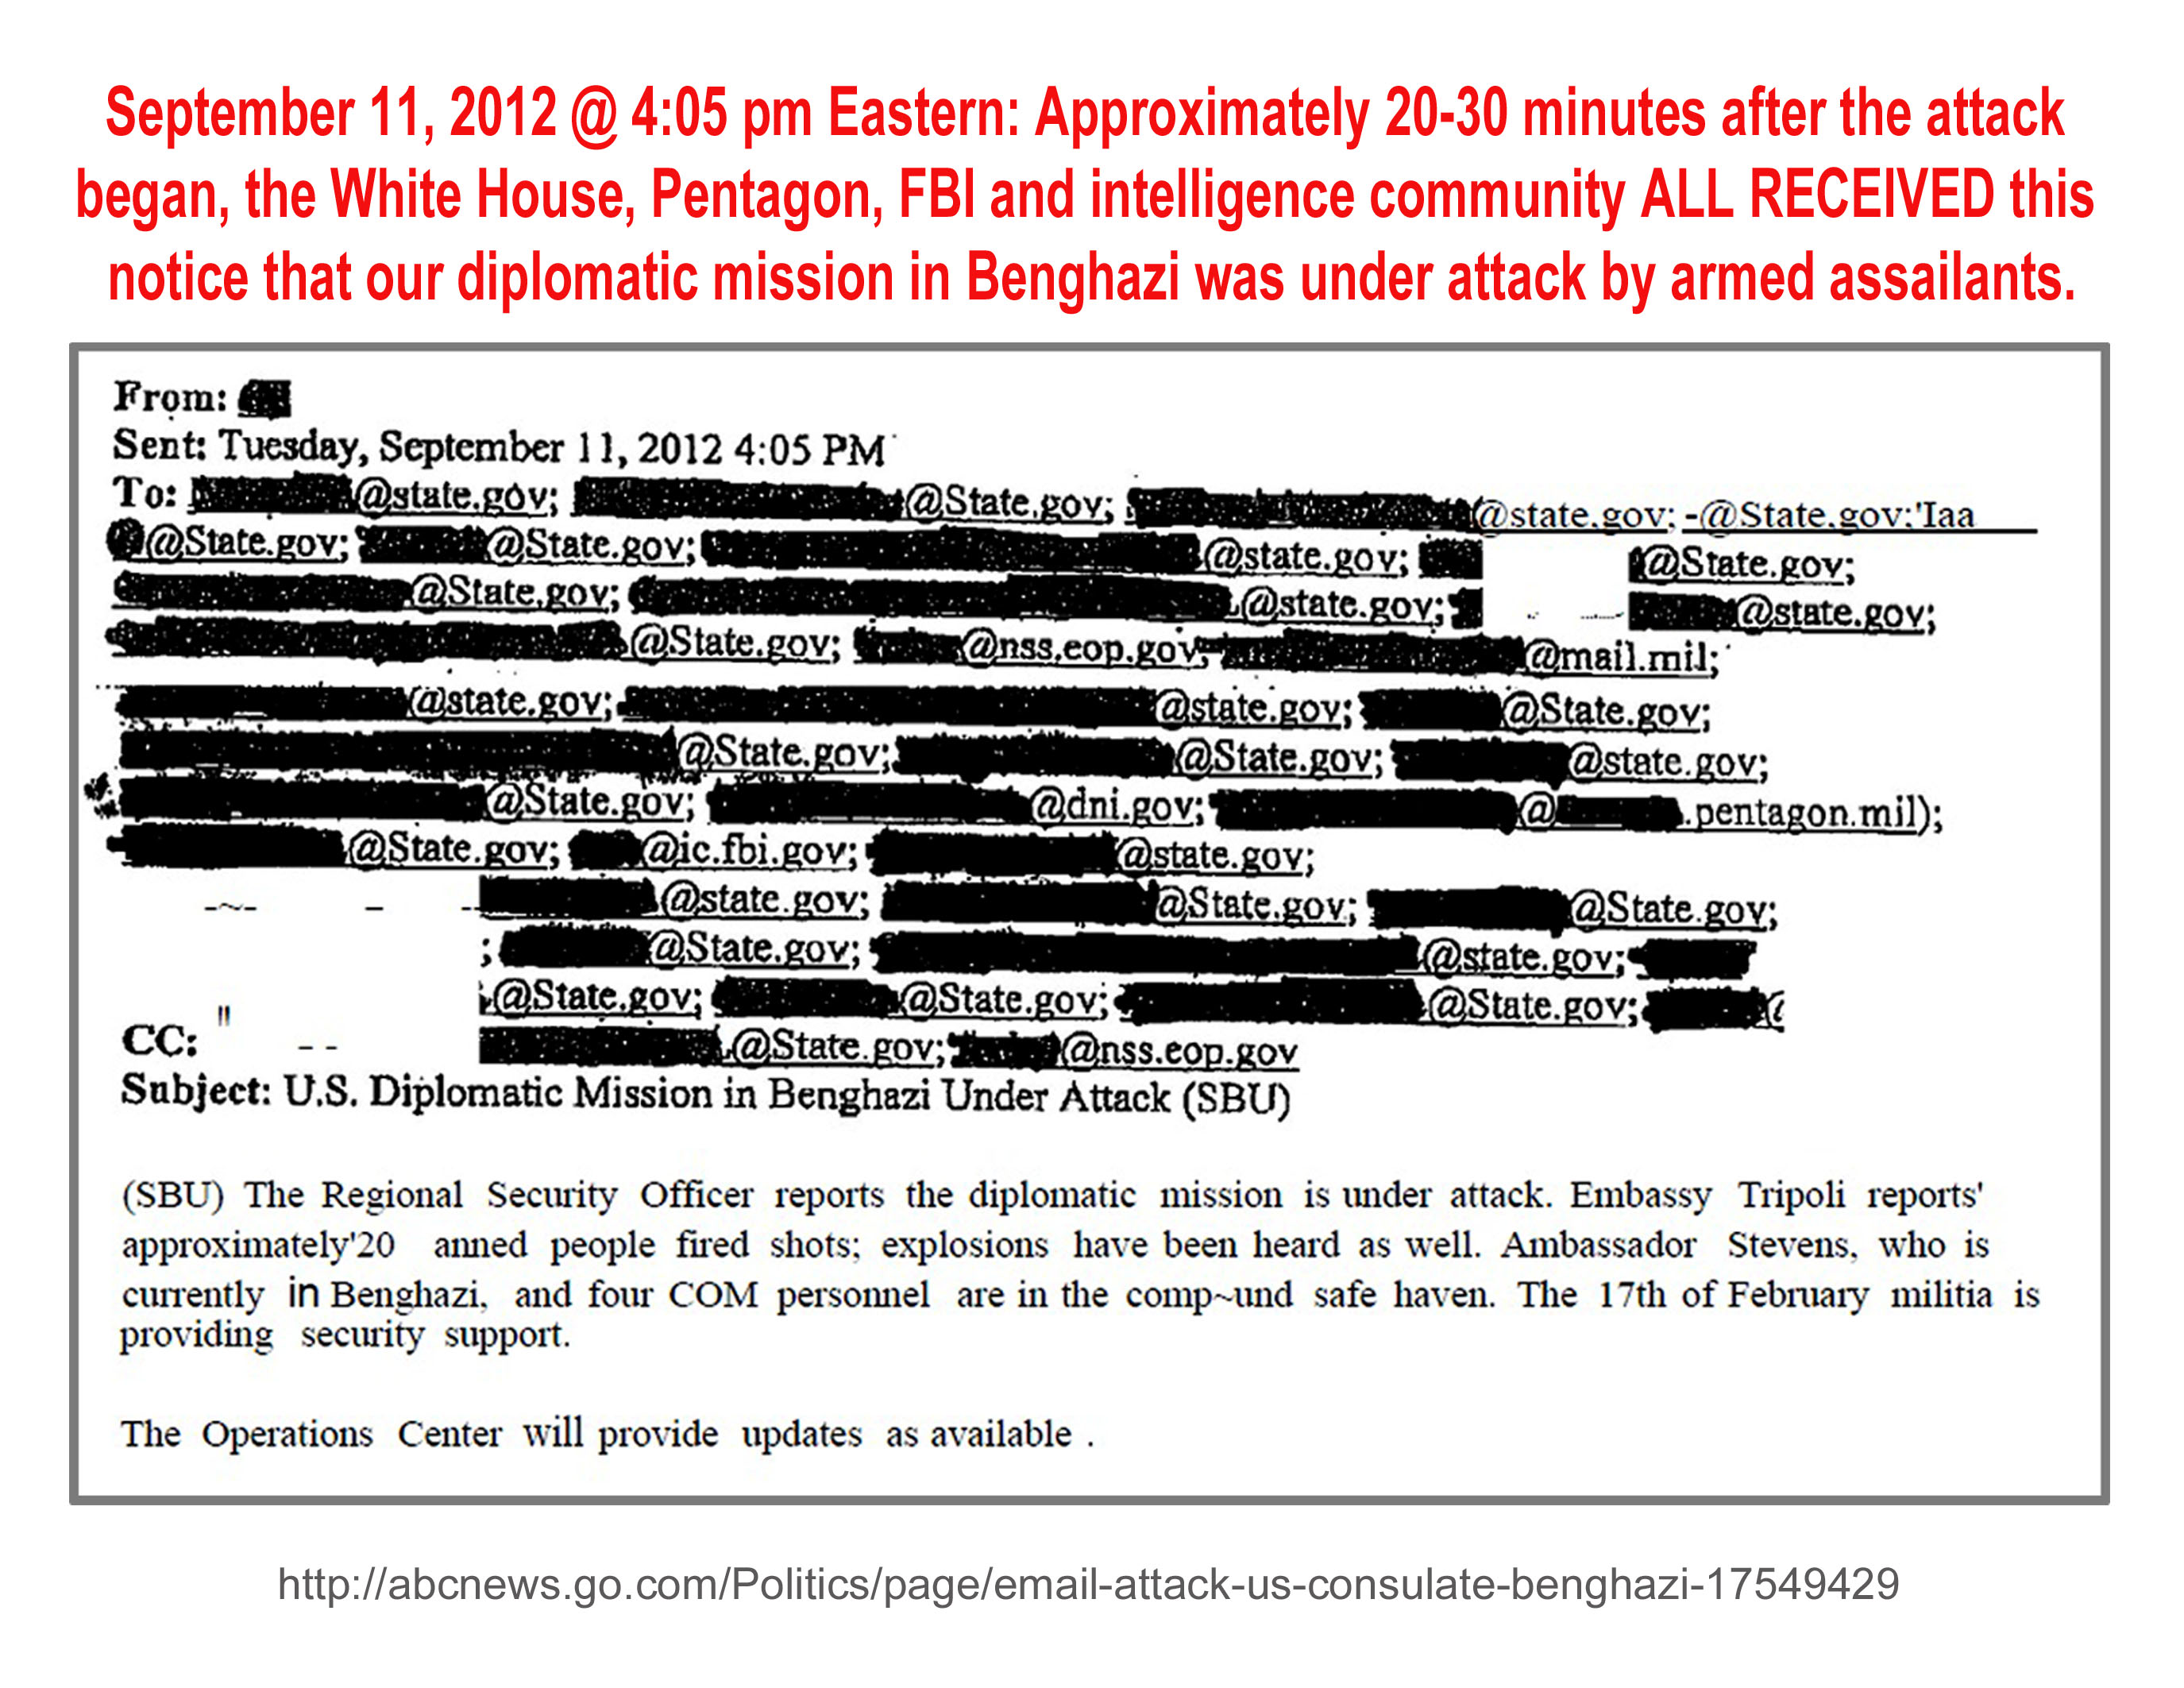 2012_09-11-405pm-email-us-dipl-benghazi-under-attack